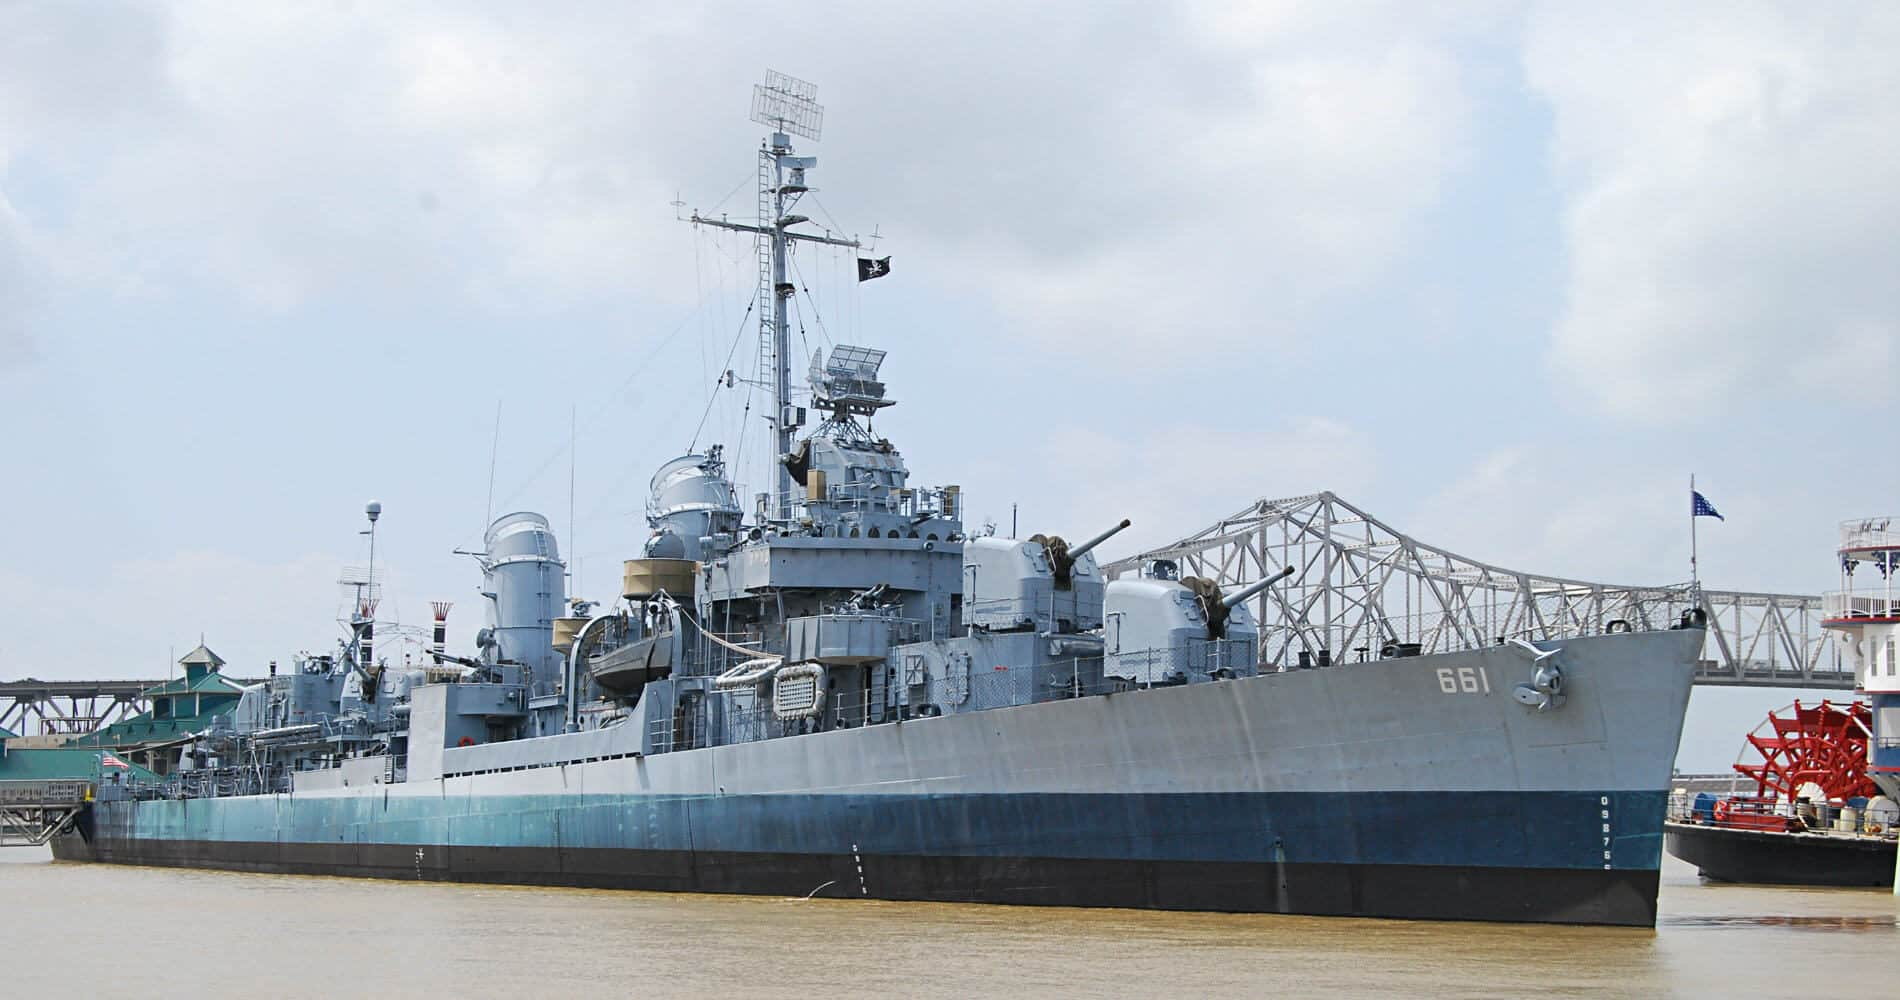 USS KIDD ship docked at the wharf on the muddy Mississippi River with bridge in background.